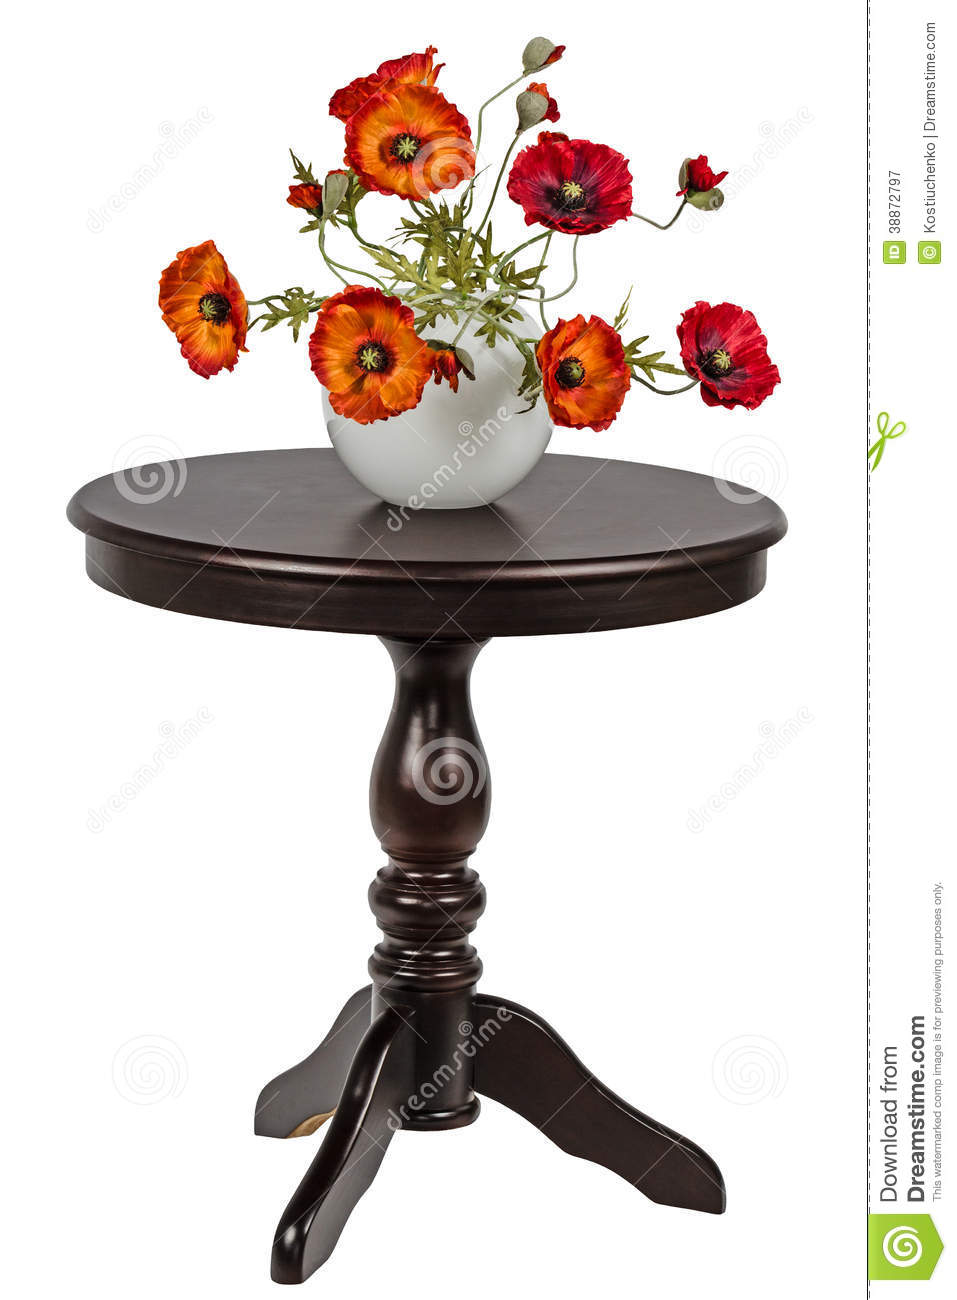 Round Table La Mesa.Artificial Poppies In A Vase On The Round Table Stock Image Image